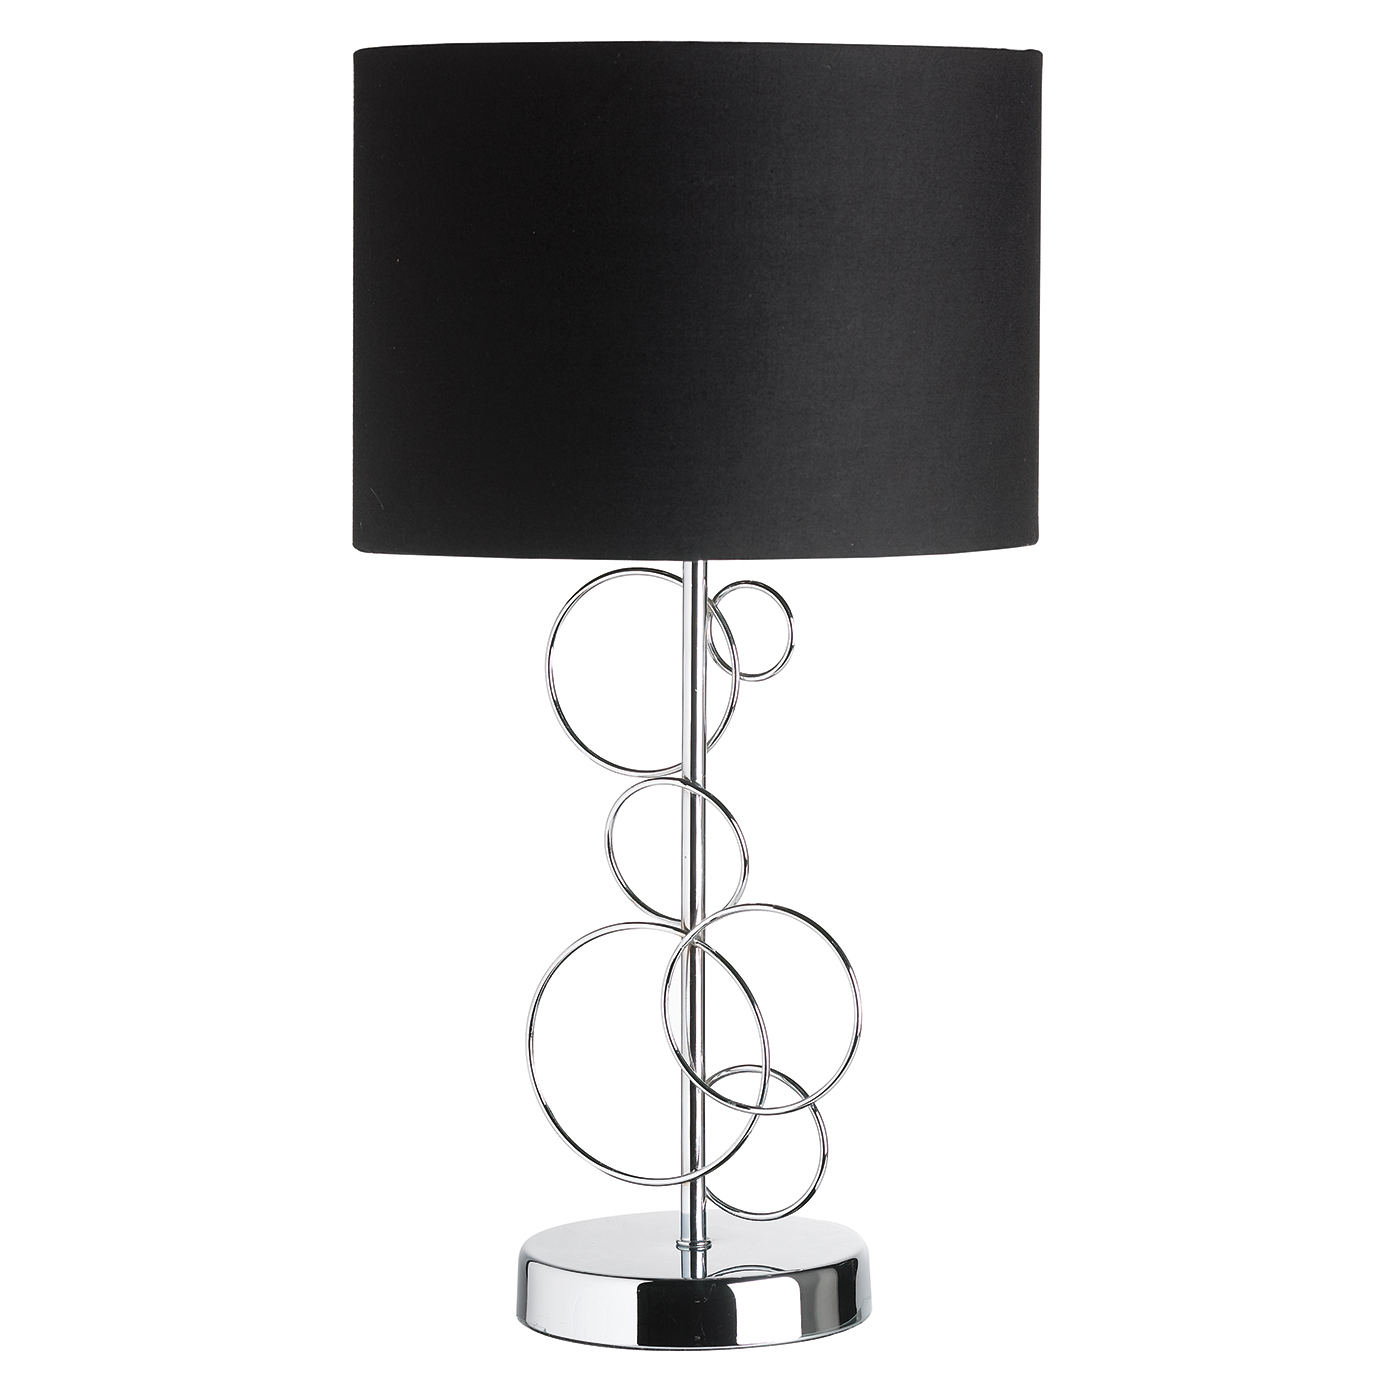 Endon Finchley table lamp 60W Chrome effect plate & black tc fabric Thumbnail 1